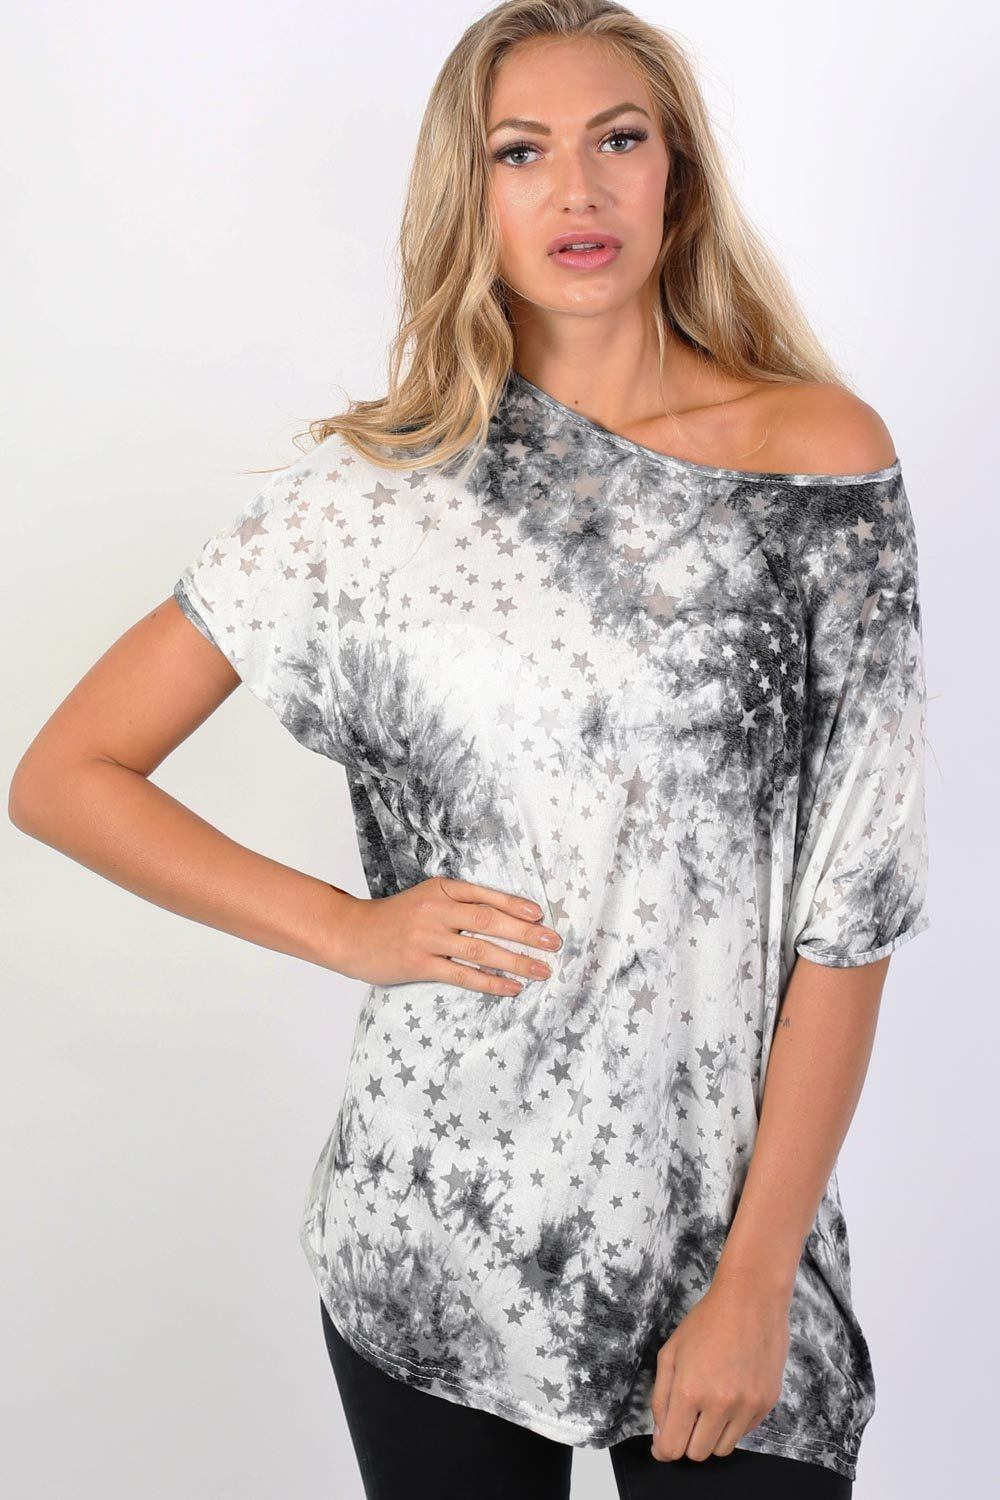 Star Print Burnout Oversized Top in Grey 1